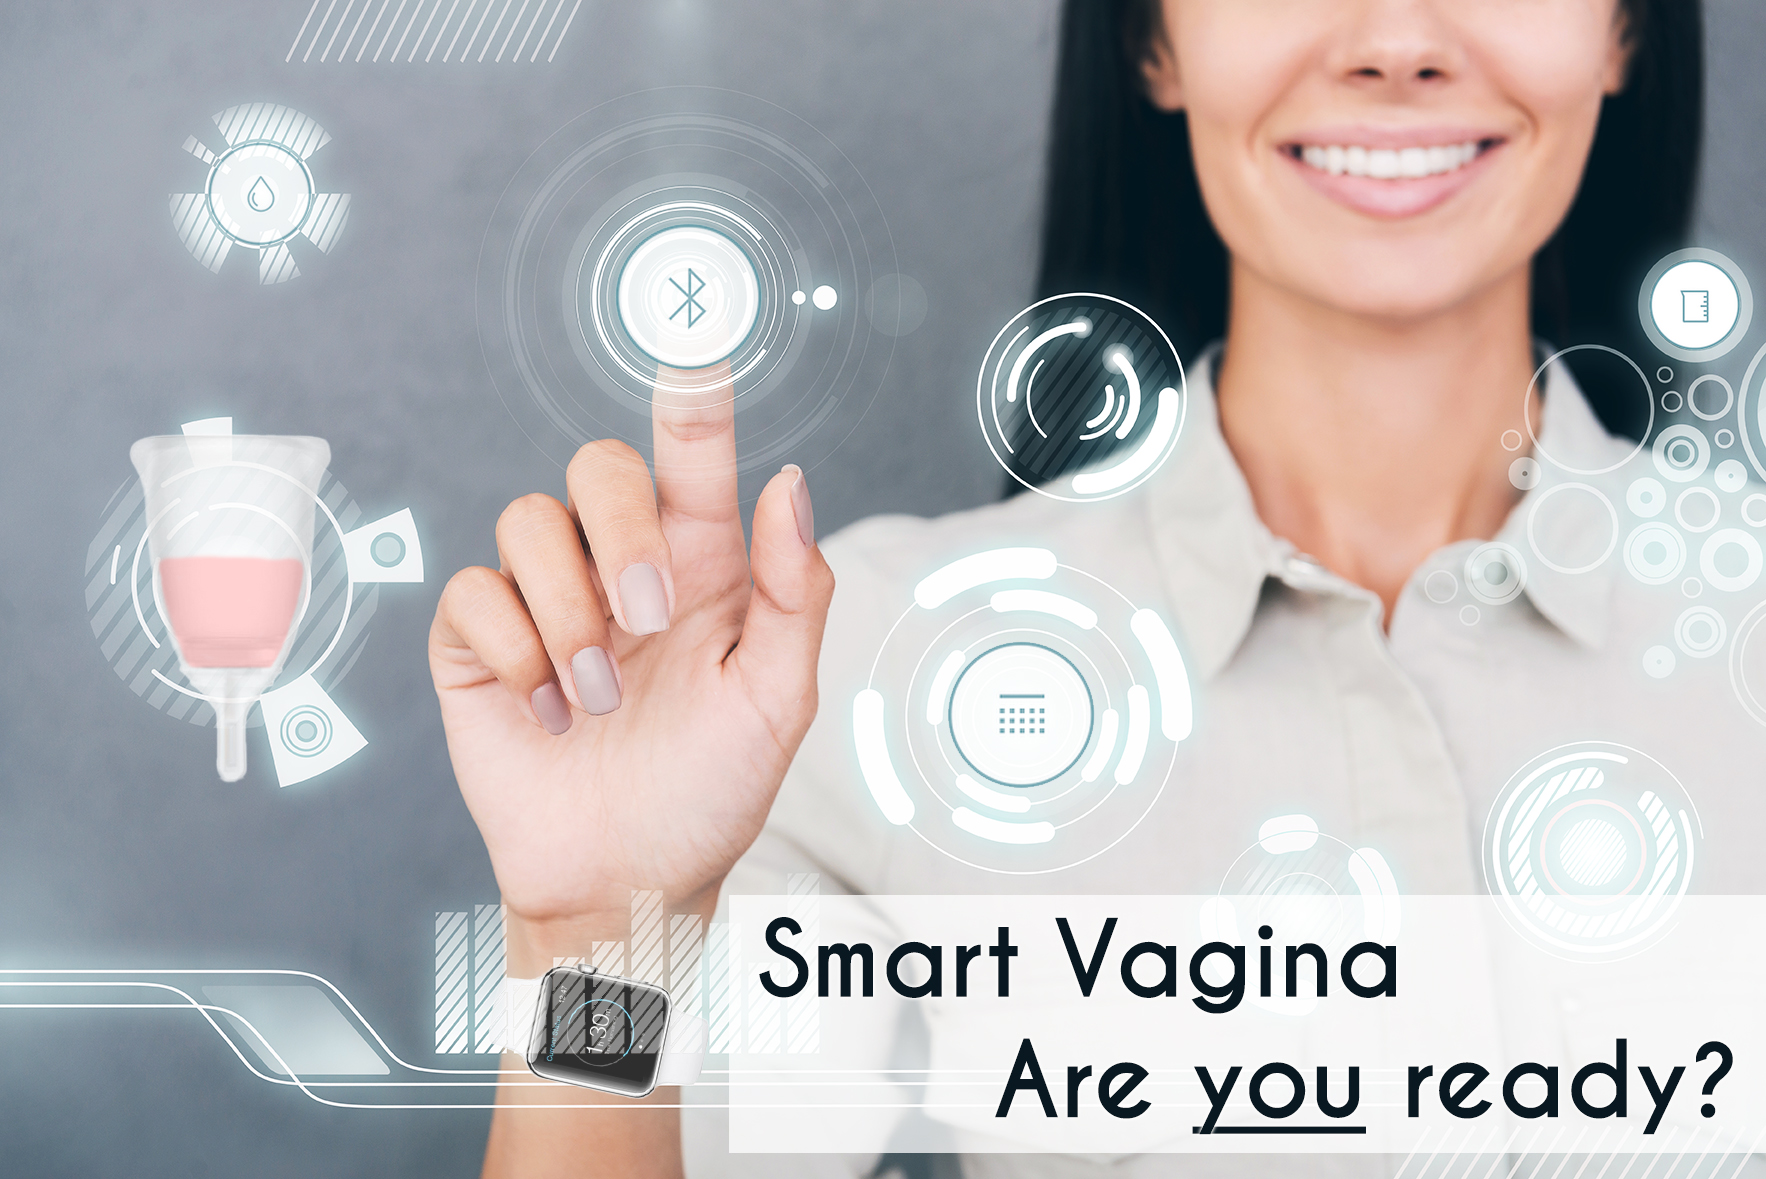 Smart Vagina: Are you ready? #satire